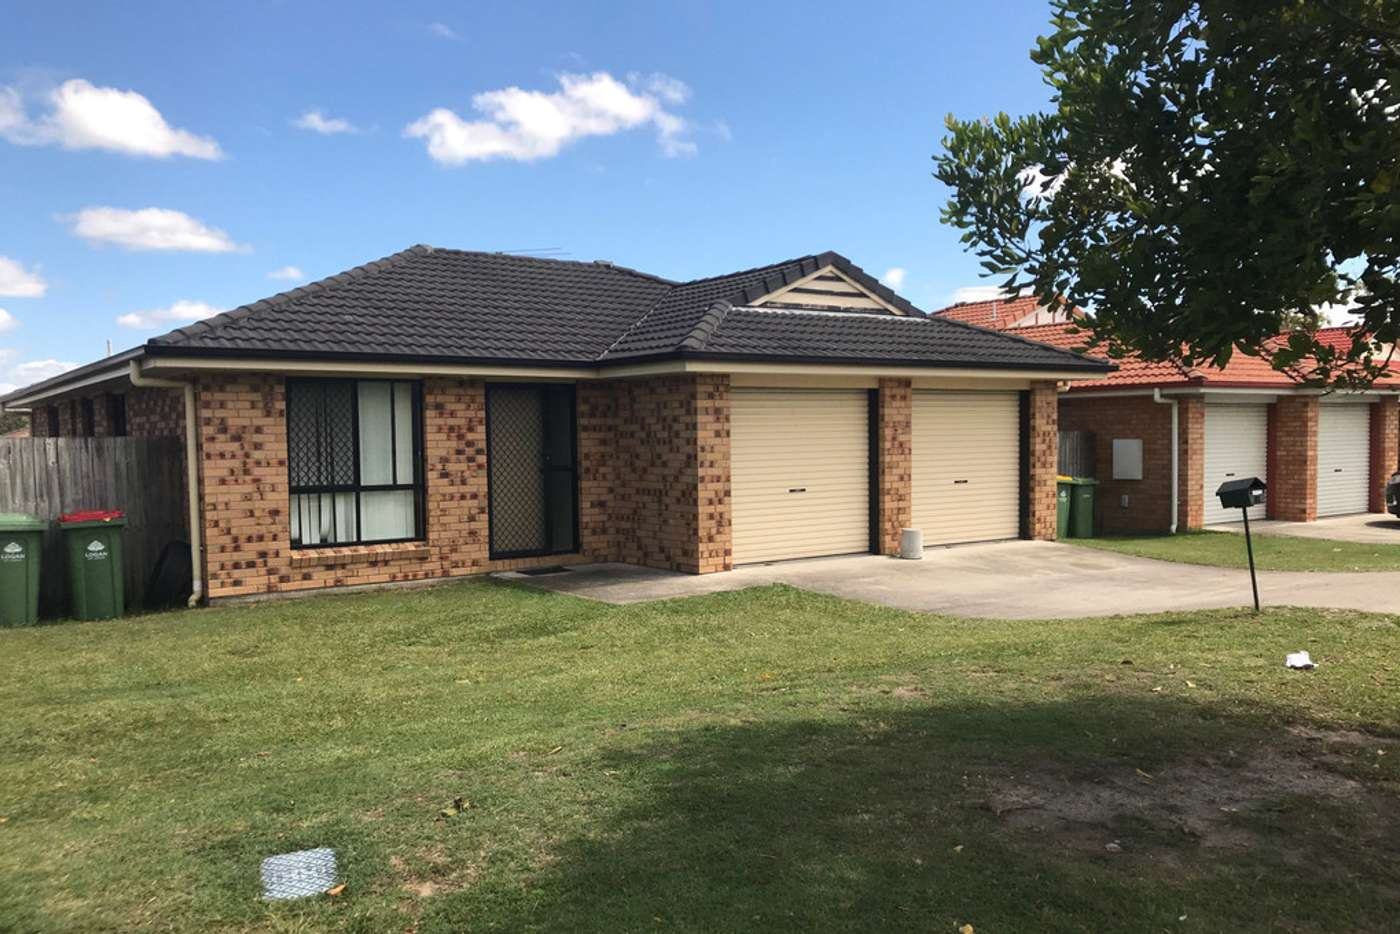 Main view of Homely house listing, 9 Justin Place, Crestmead QLD 4132